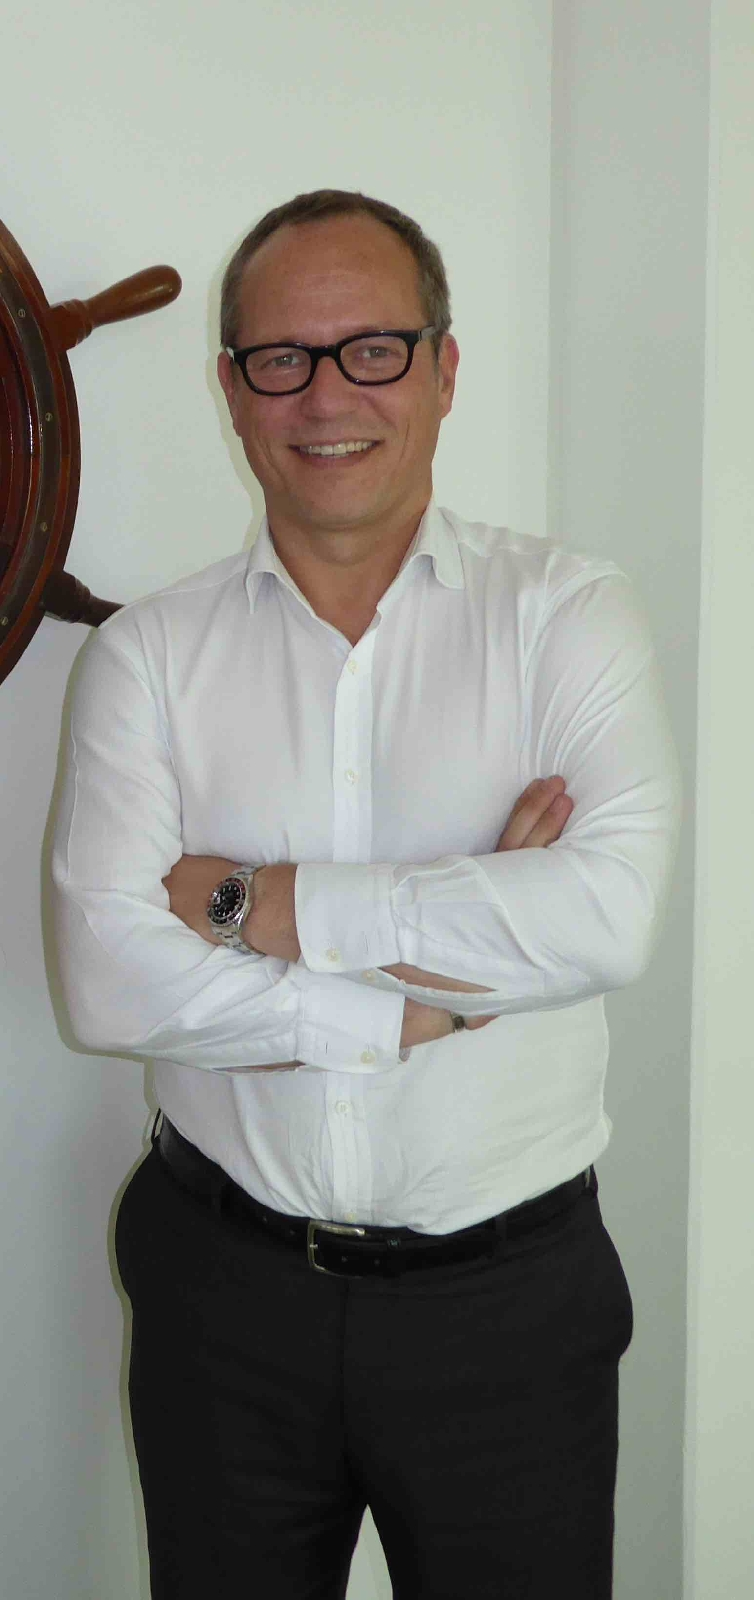 The Interview with MD of ChartWorld GmbH and SevenCs GmbH, Mr Jochen Rudolph